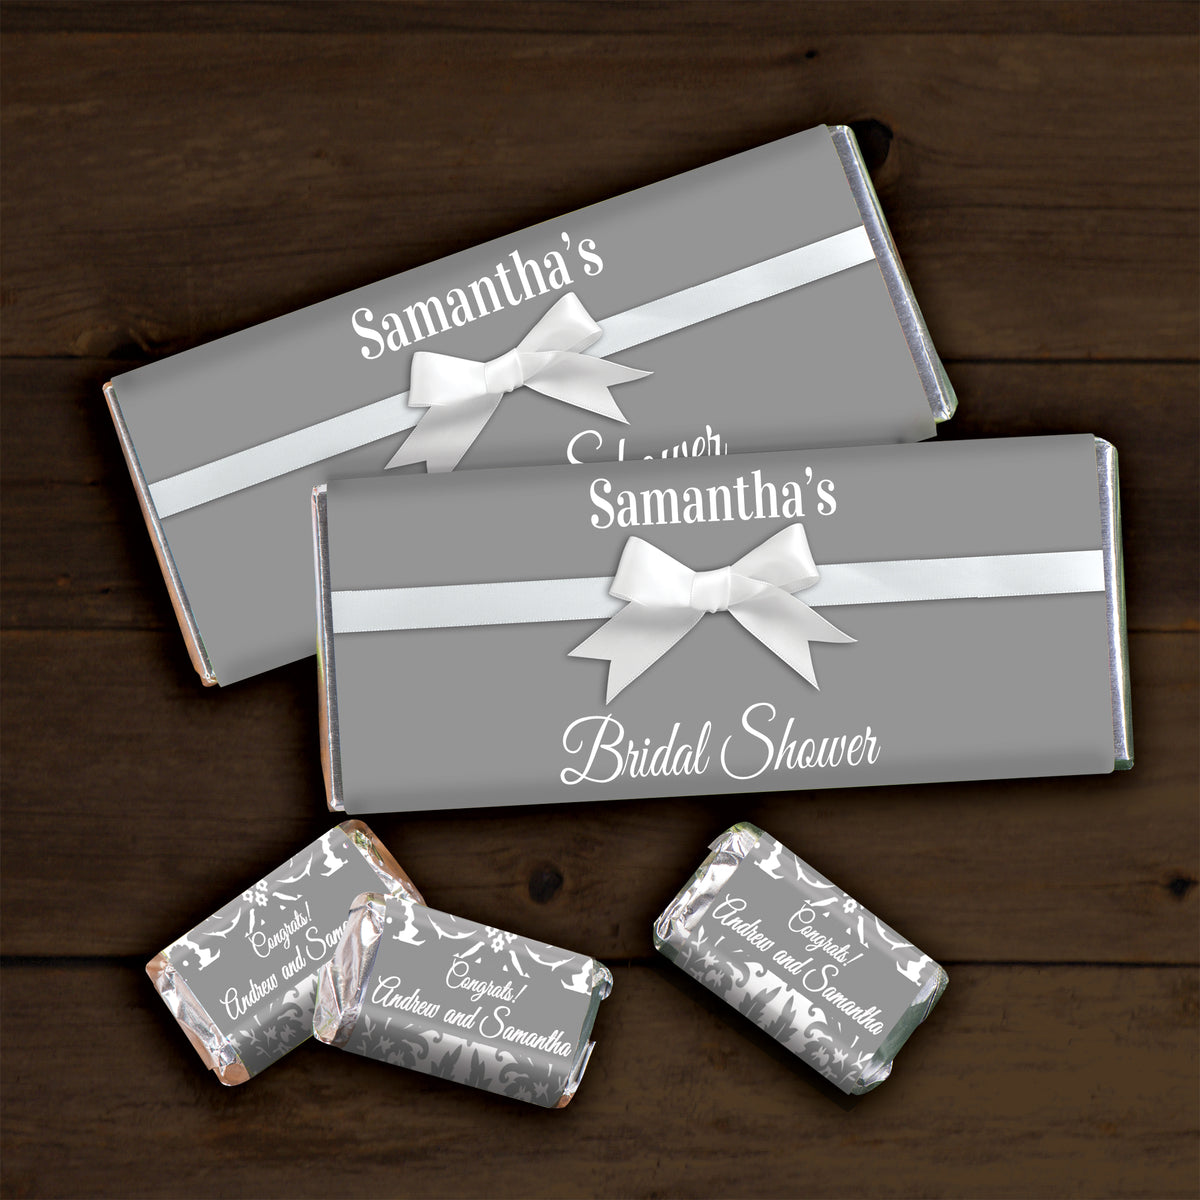 Hershey's Chocolate Vegas Nights Personalized Candy Bars